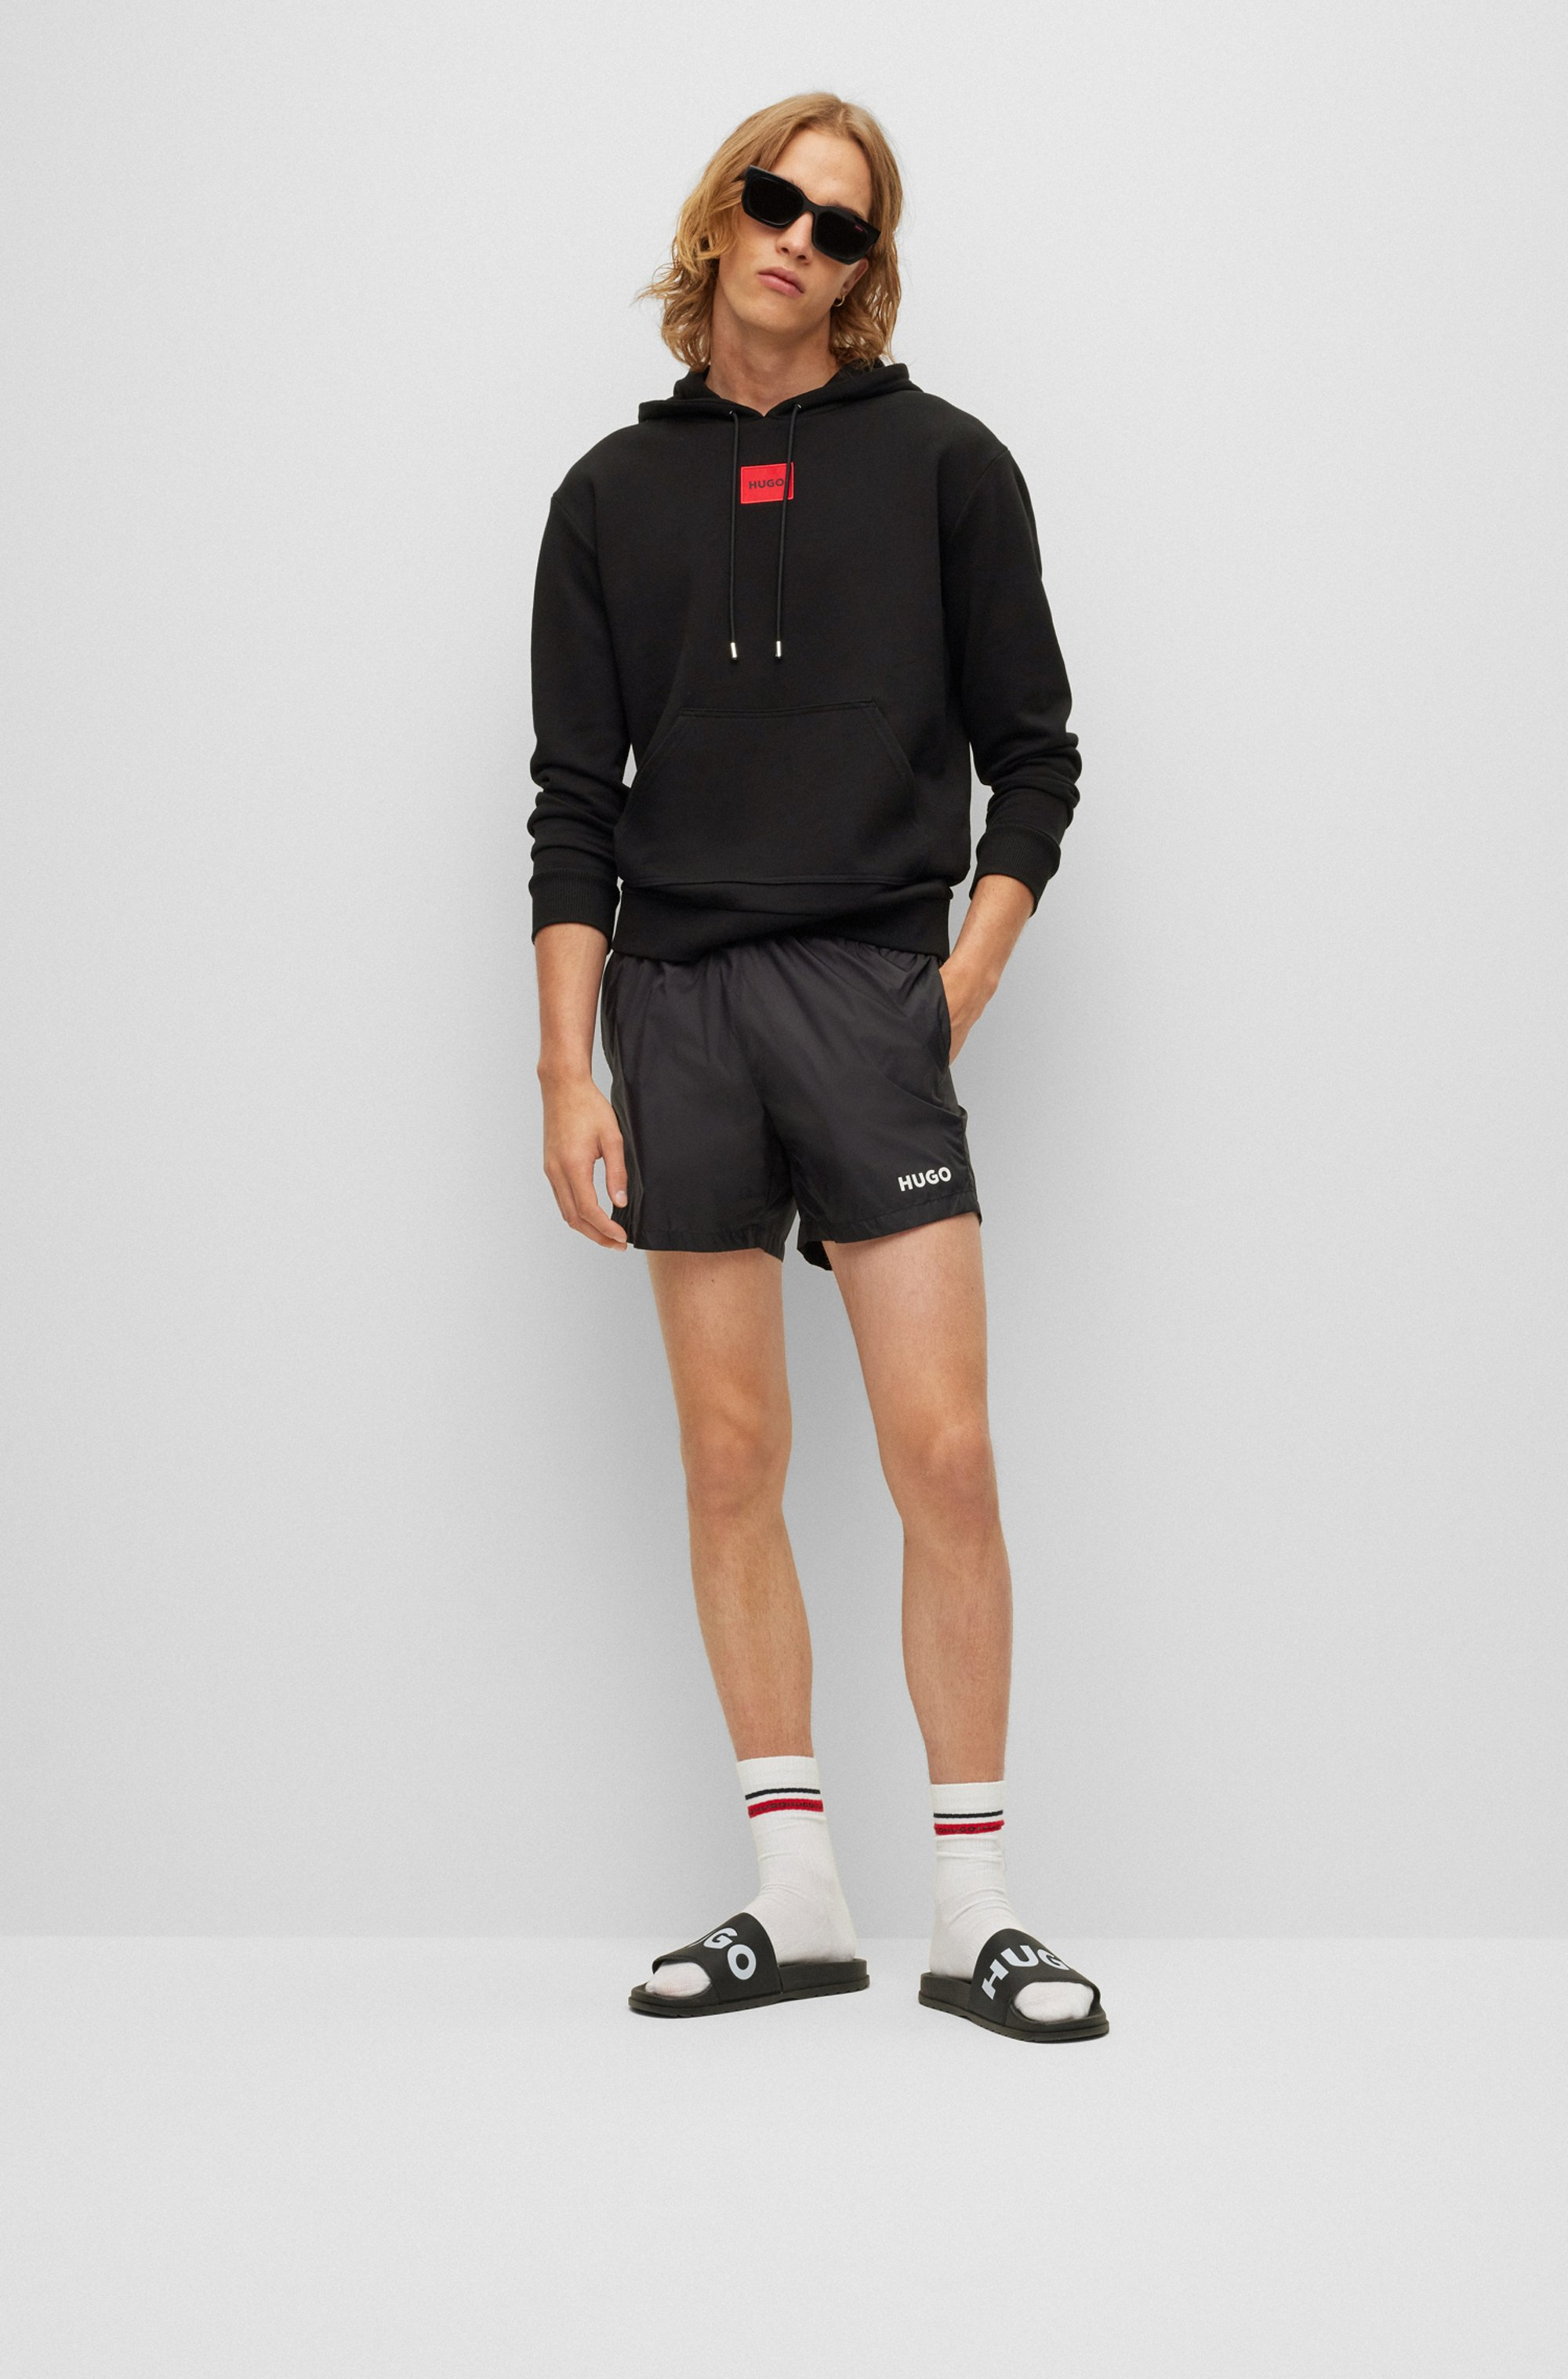 Cotton hooded sweatshirt with red logo label